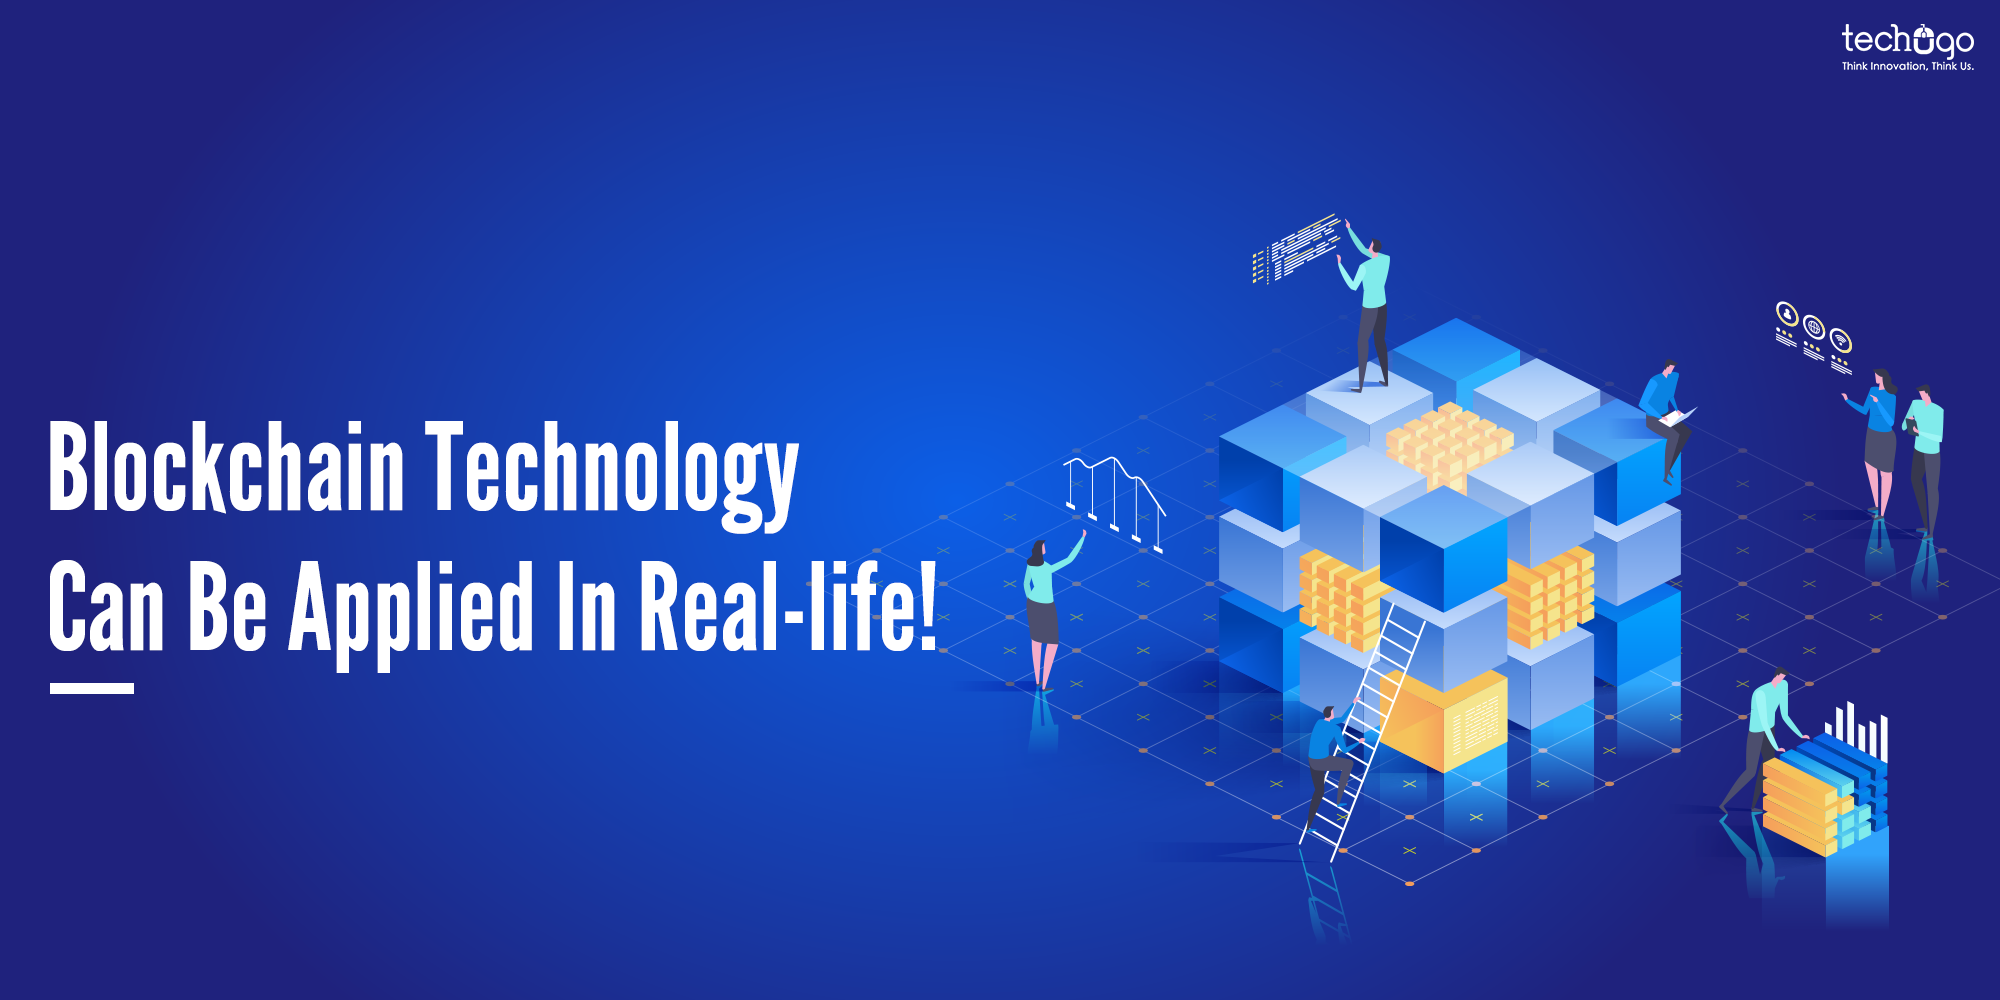 Blockchain Technology Can Be Applied In Real-life!